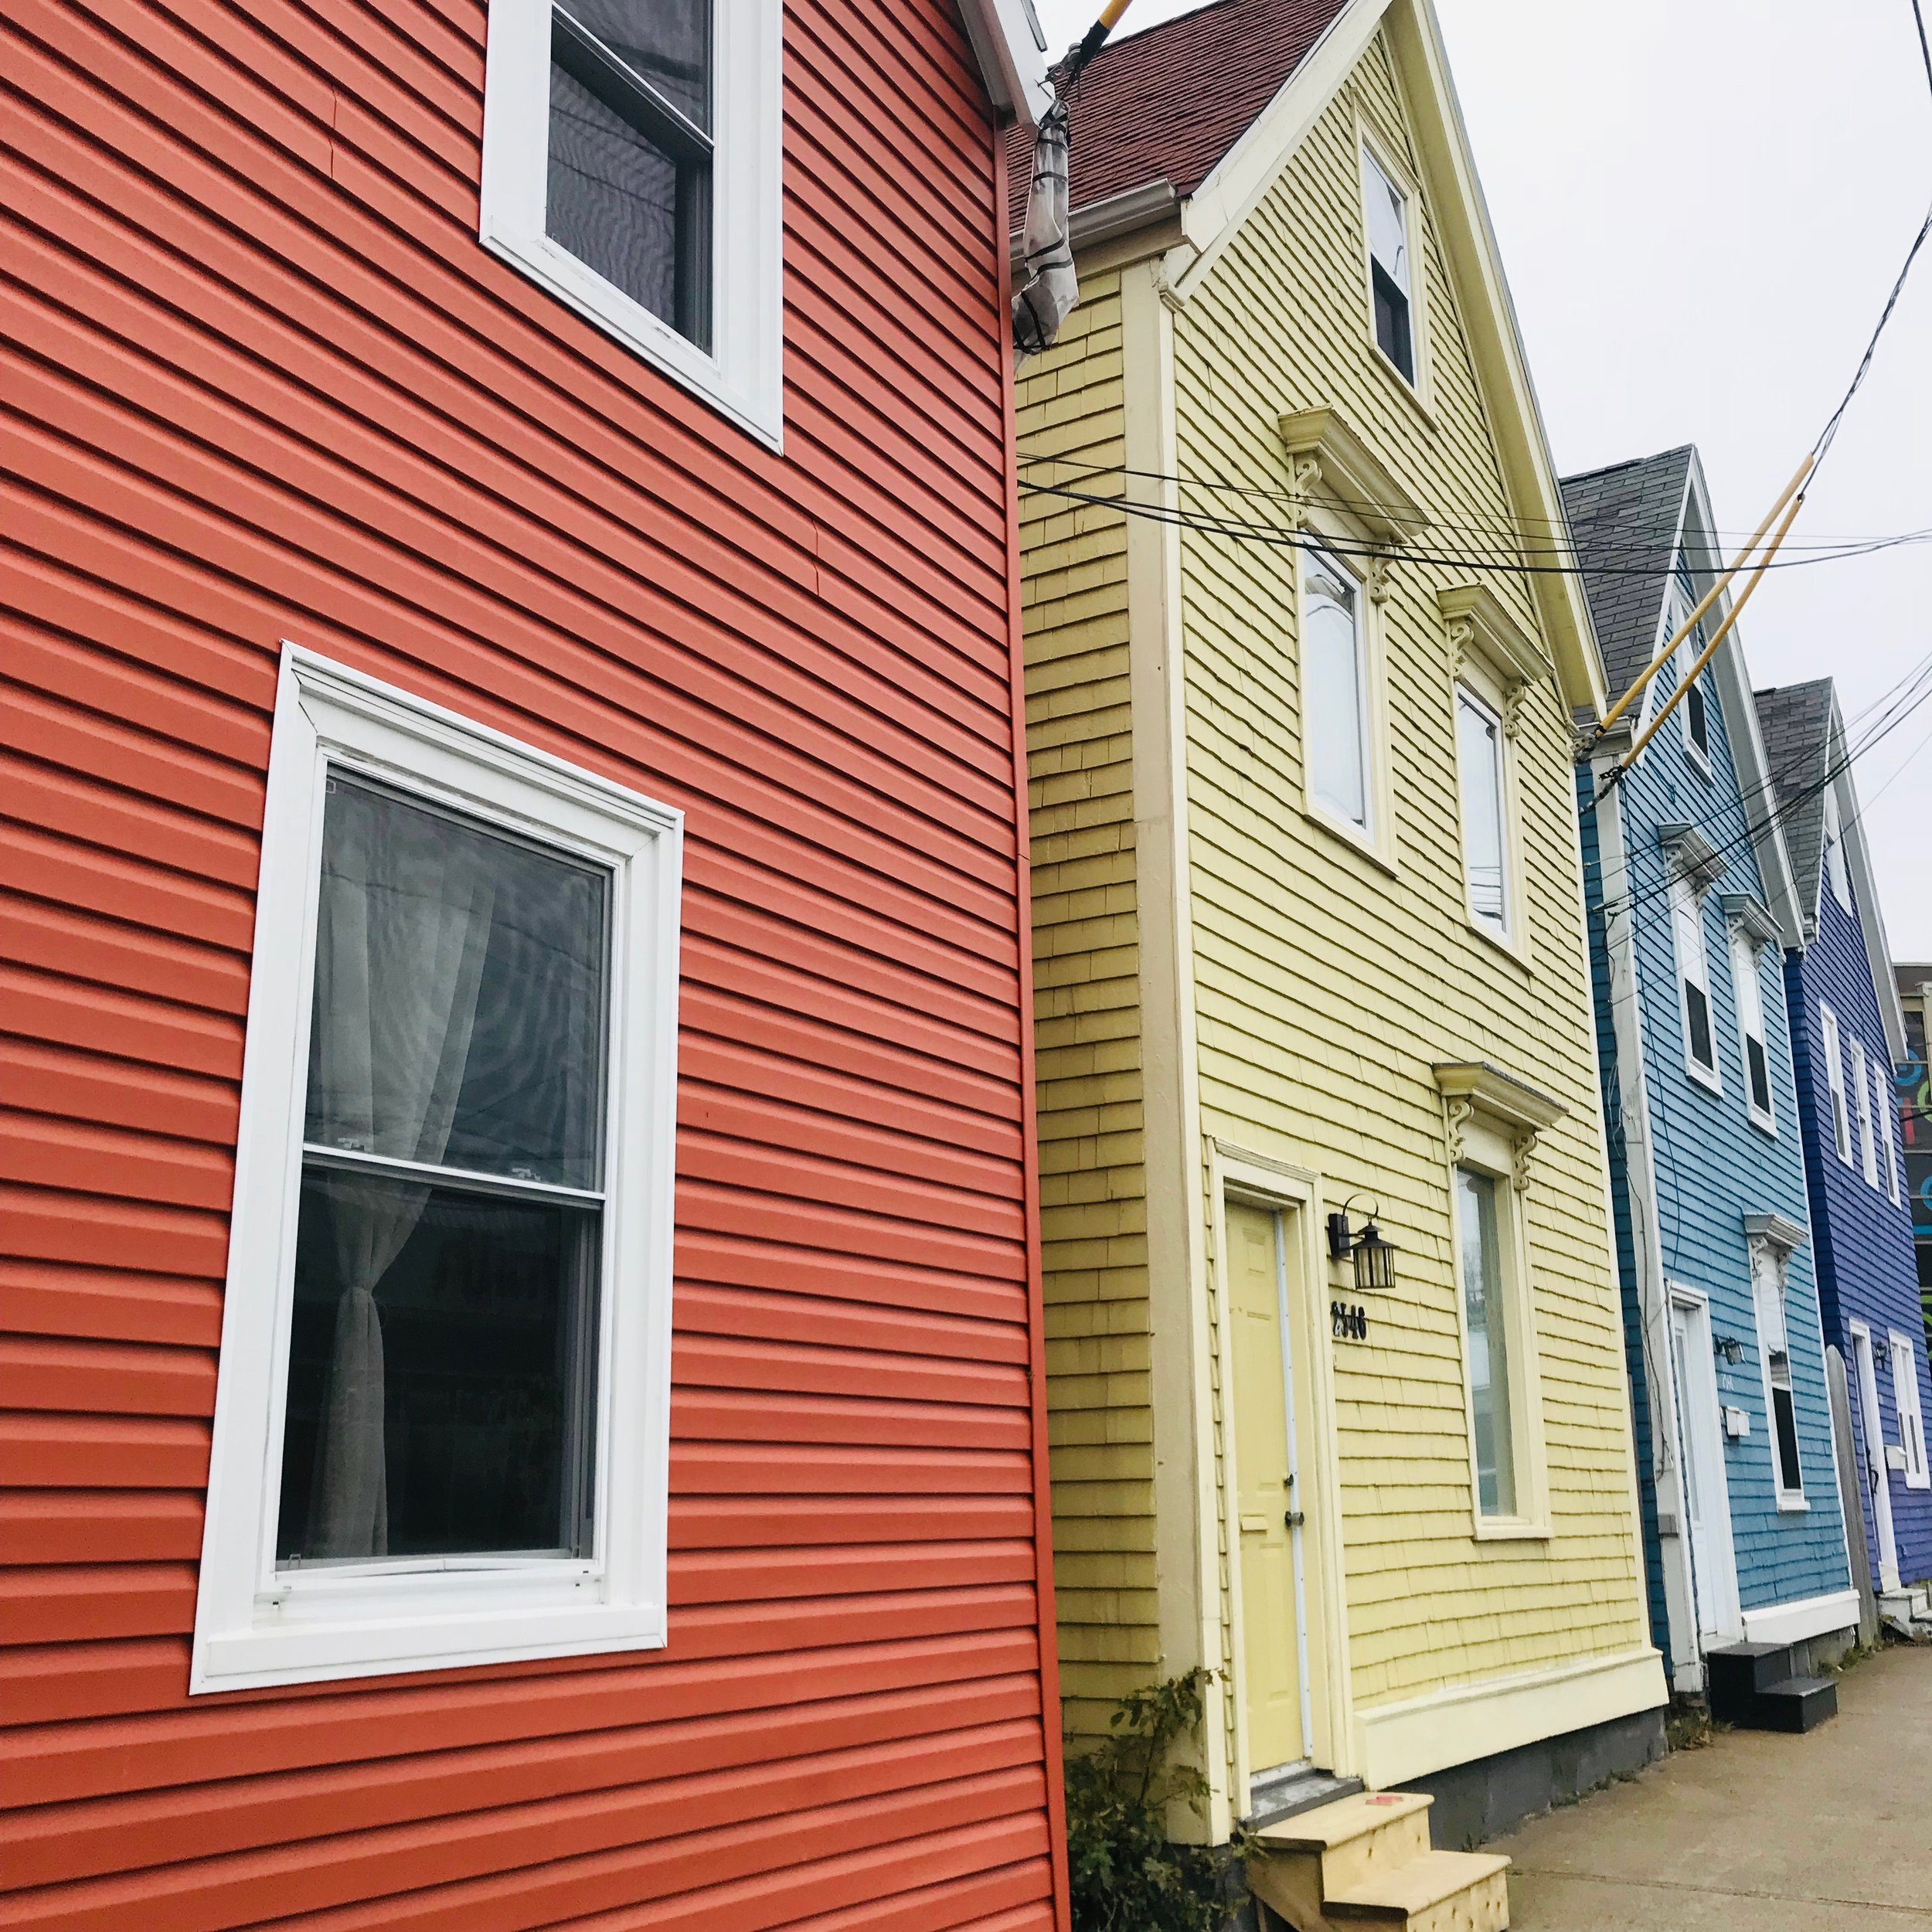 Photos that will make you want to visit Nova Scotia